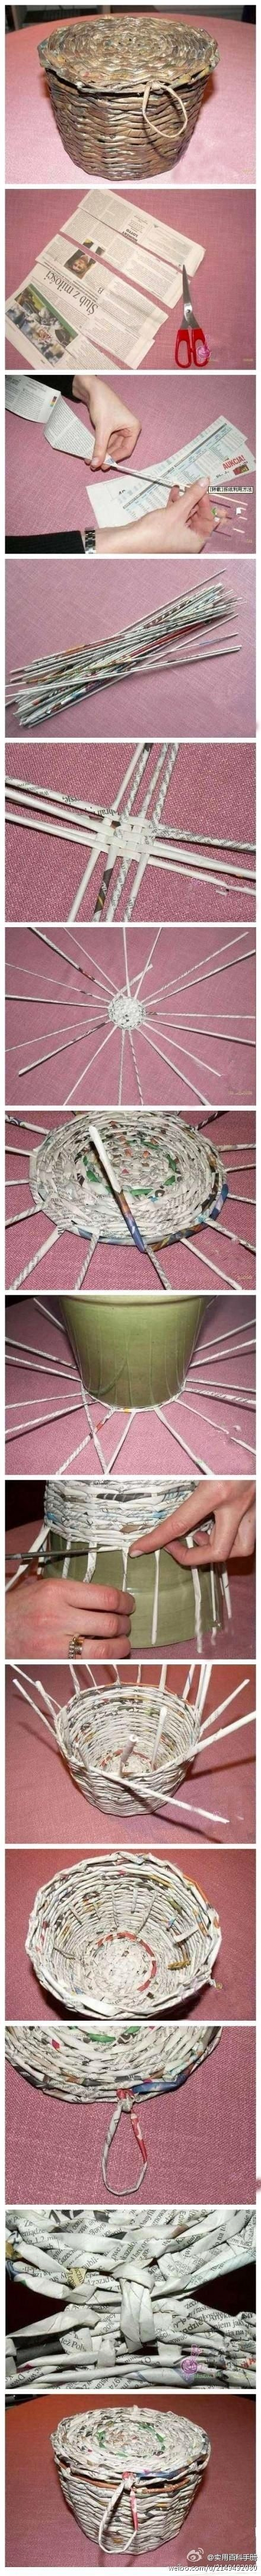 DIY Newspaper Basket...I wonder if this would work for old shirts?